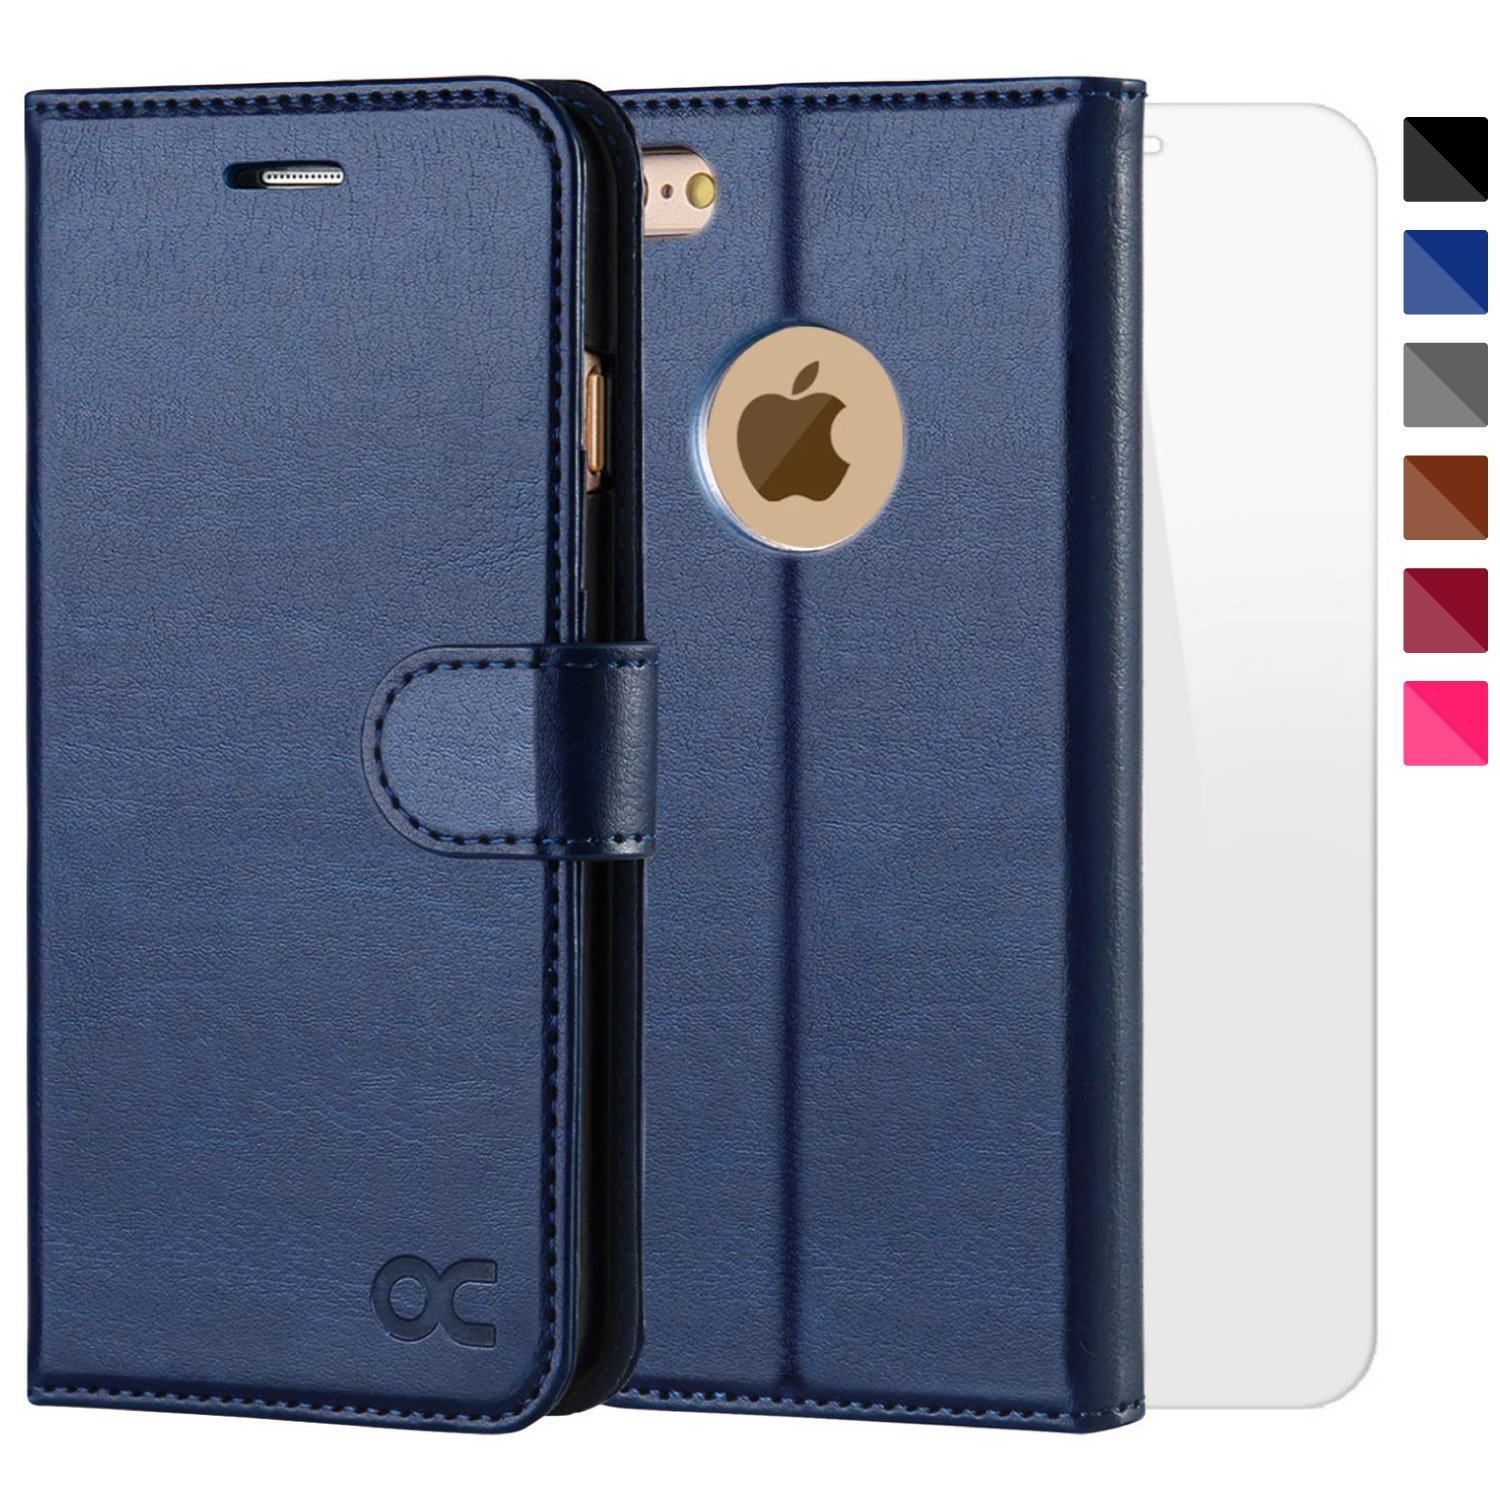 OCASE iPhone 6S Case [Free Screen Protector Included] Leather Wallet Flip Case for iPhone 6 / 6S Devices 4.7 Inch - Blue